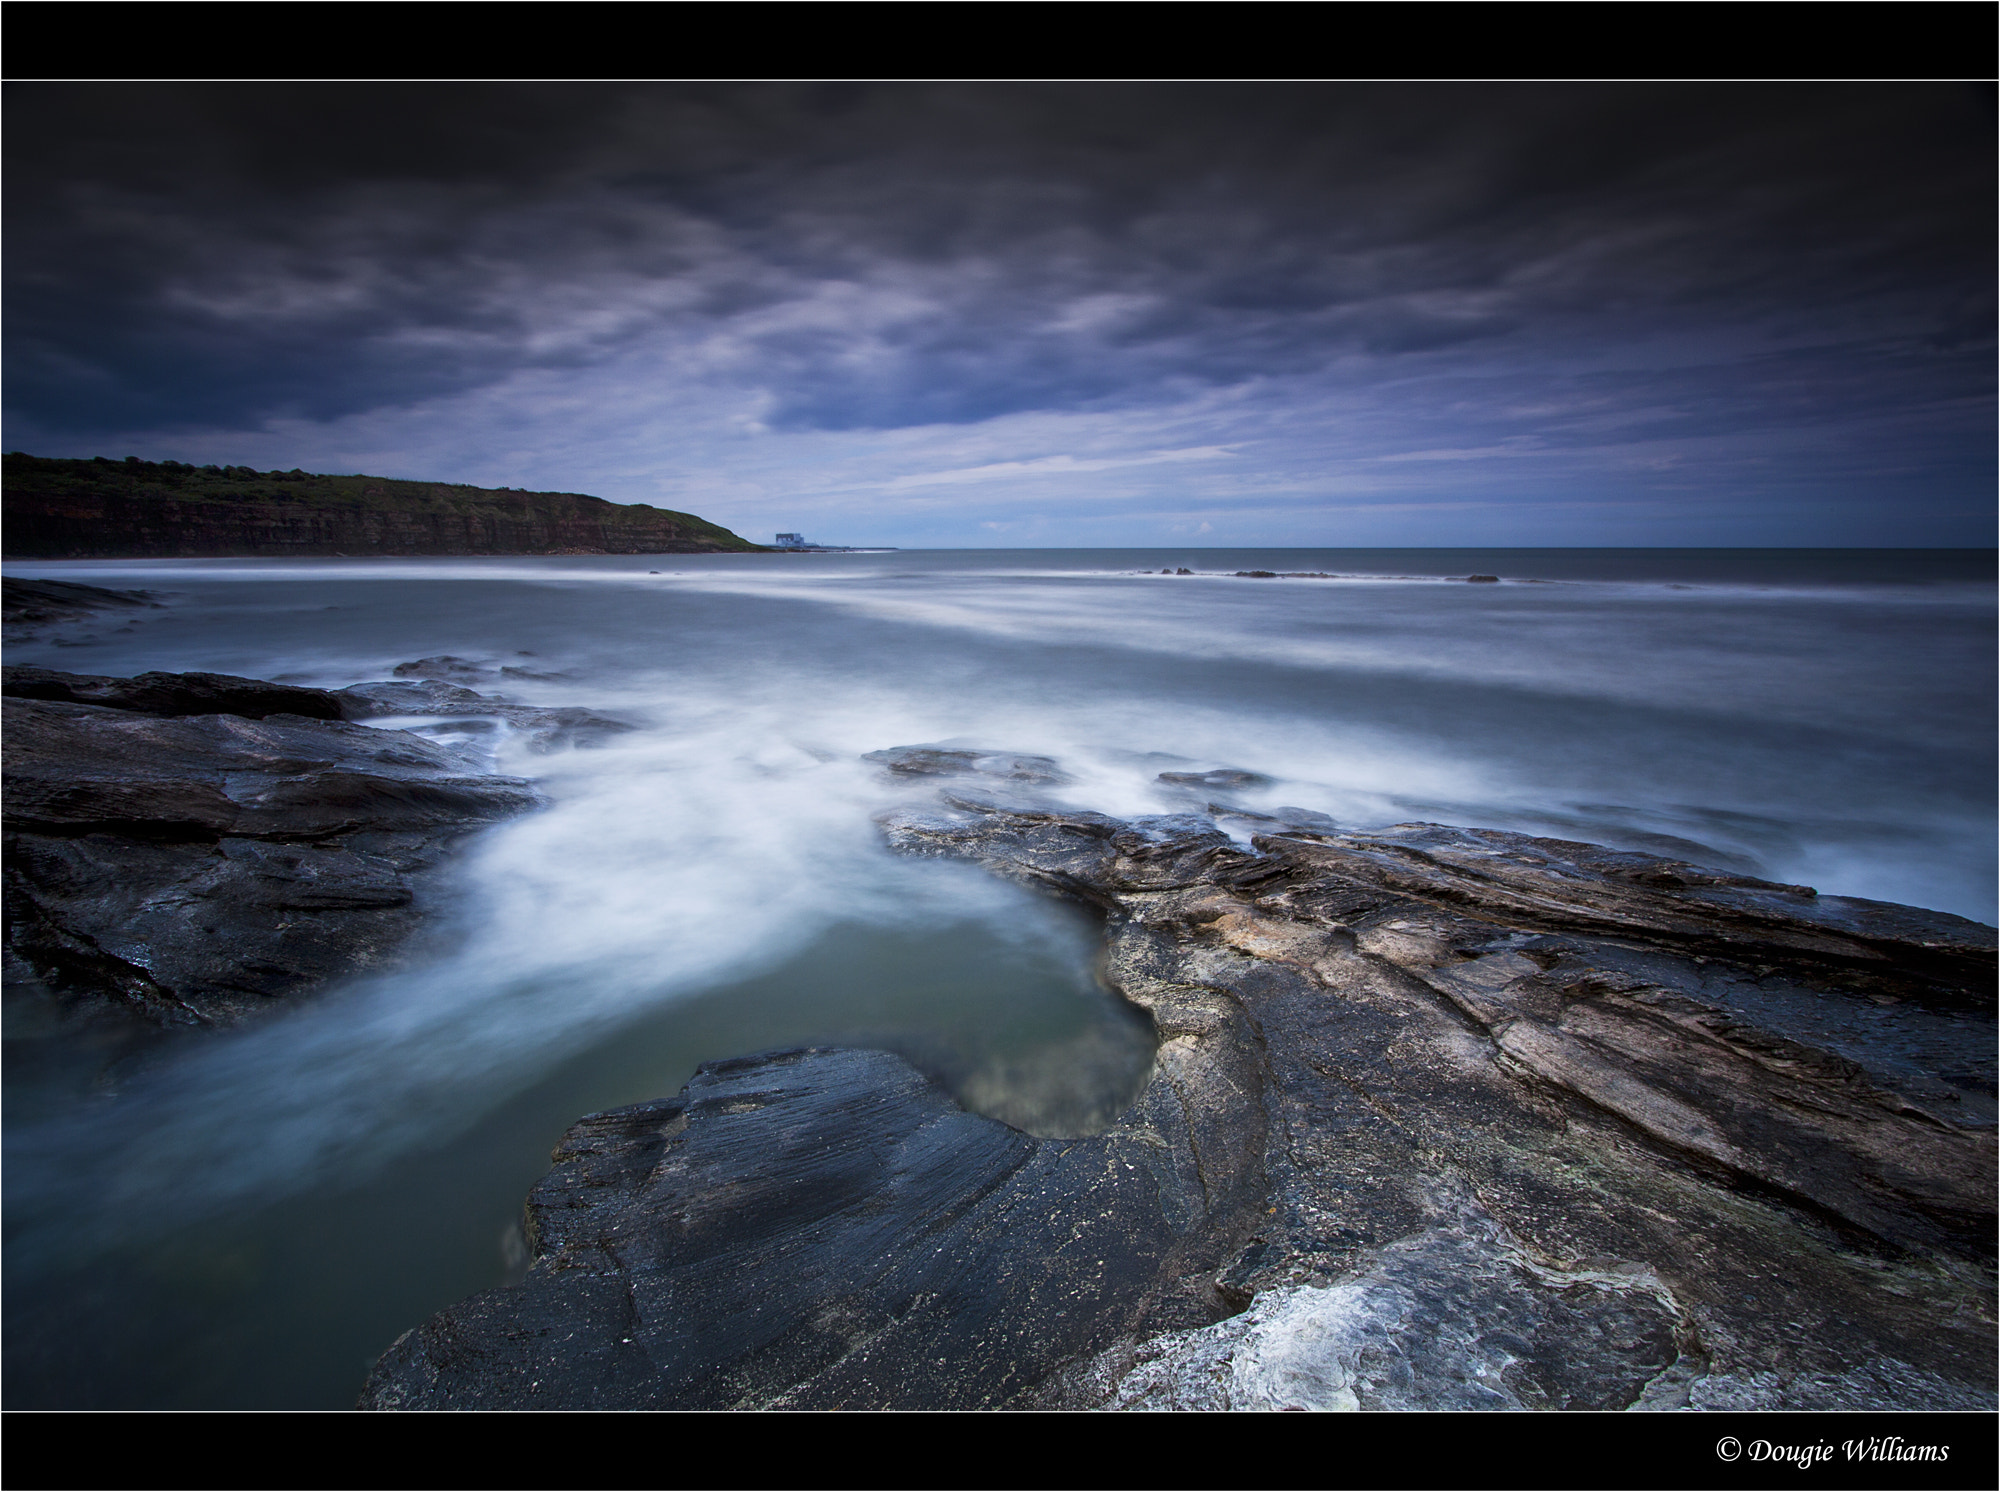 Photograph Cove 2 by Dougie Williams on 500px